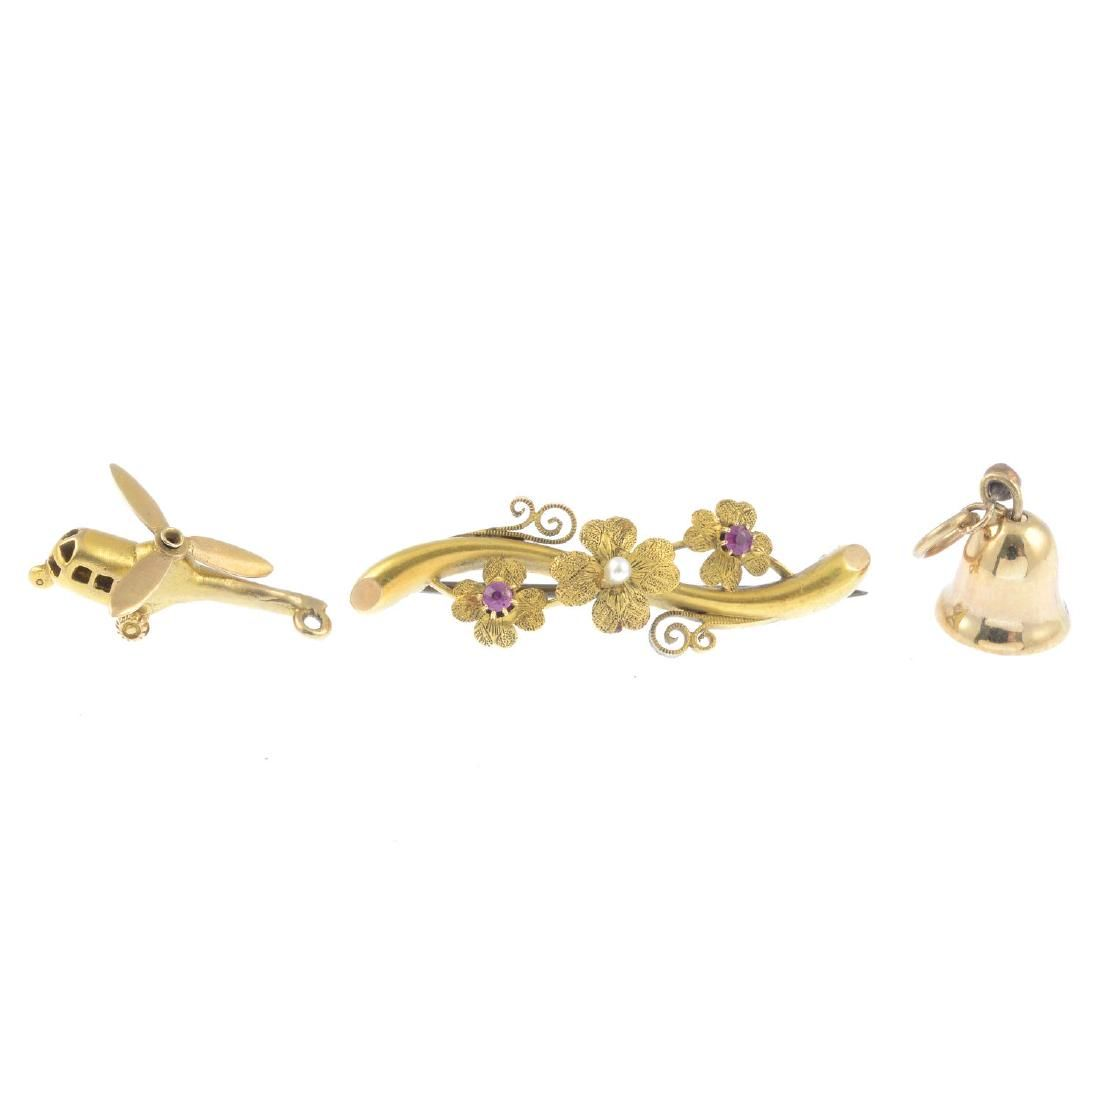 Four items of gold jewellery. To include an early 20th